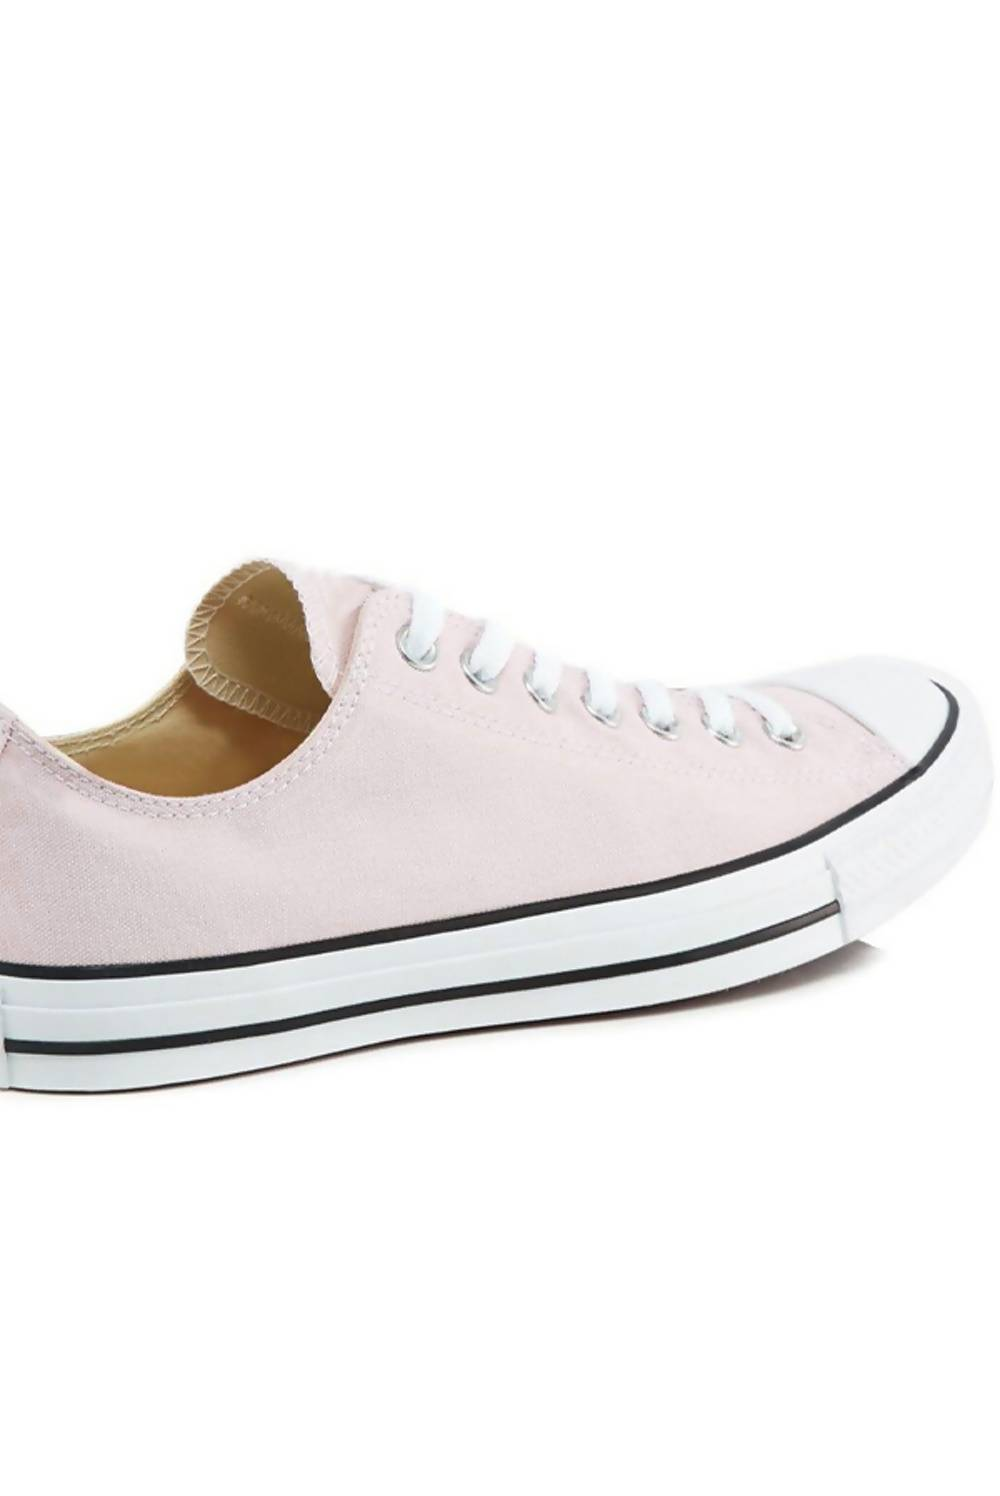 Pink Canvas Flat Lace Up Trainers J5 Fashion